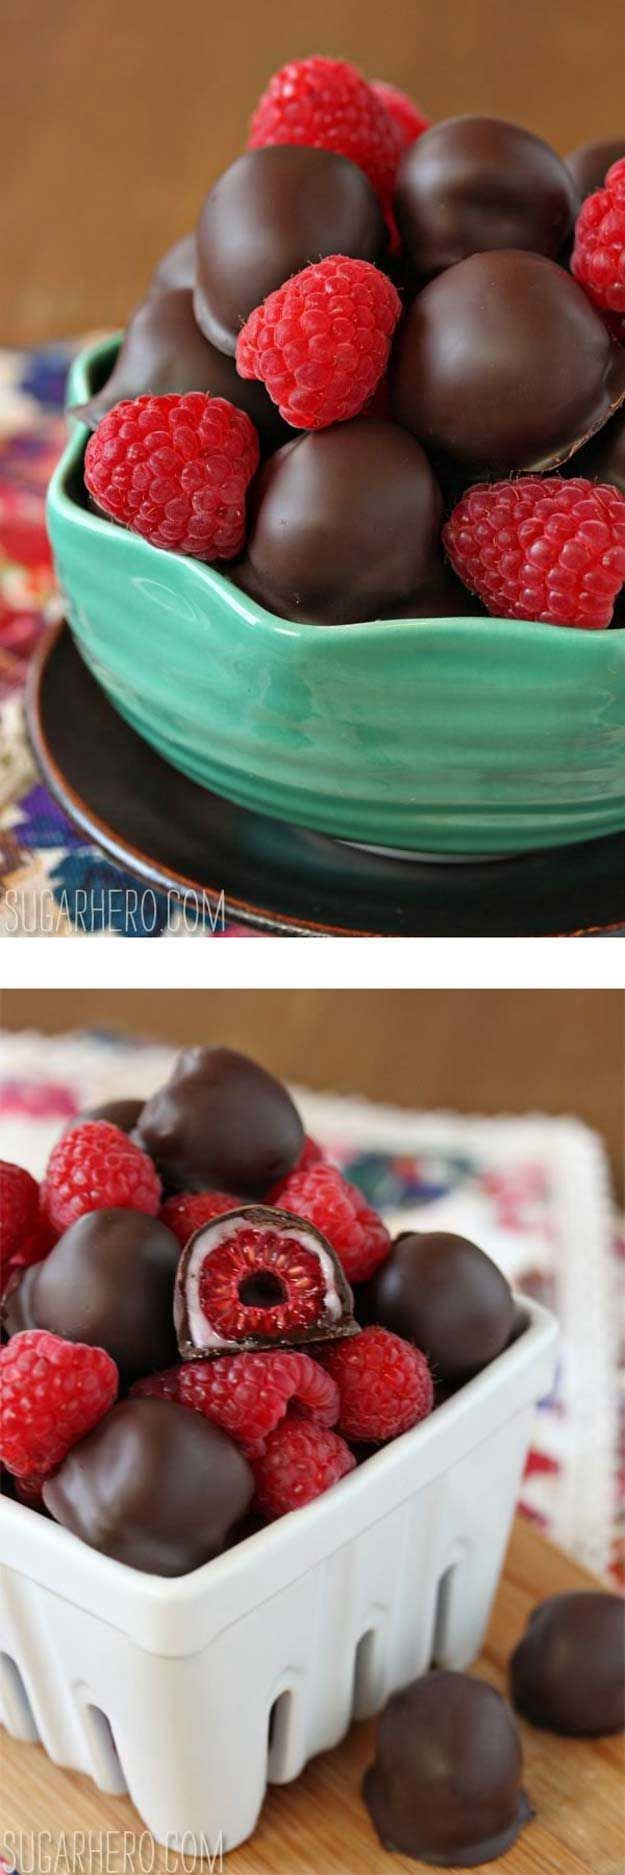 Healthy Desserts To Try Tonight - Chocolate-Covered Raspberry - Easy And Yummy DIY Health Desserts Under 100 Calories To Try Tonight. No Bake Desserts From Scratch You Can Make In A Mug With No Sugar And Easy To Eat Clean. Recipes For Chocolate Desserts F